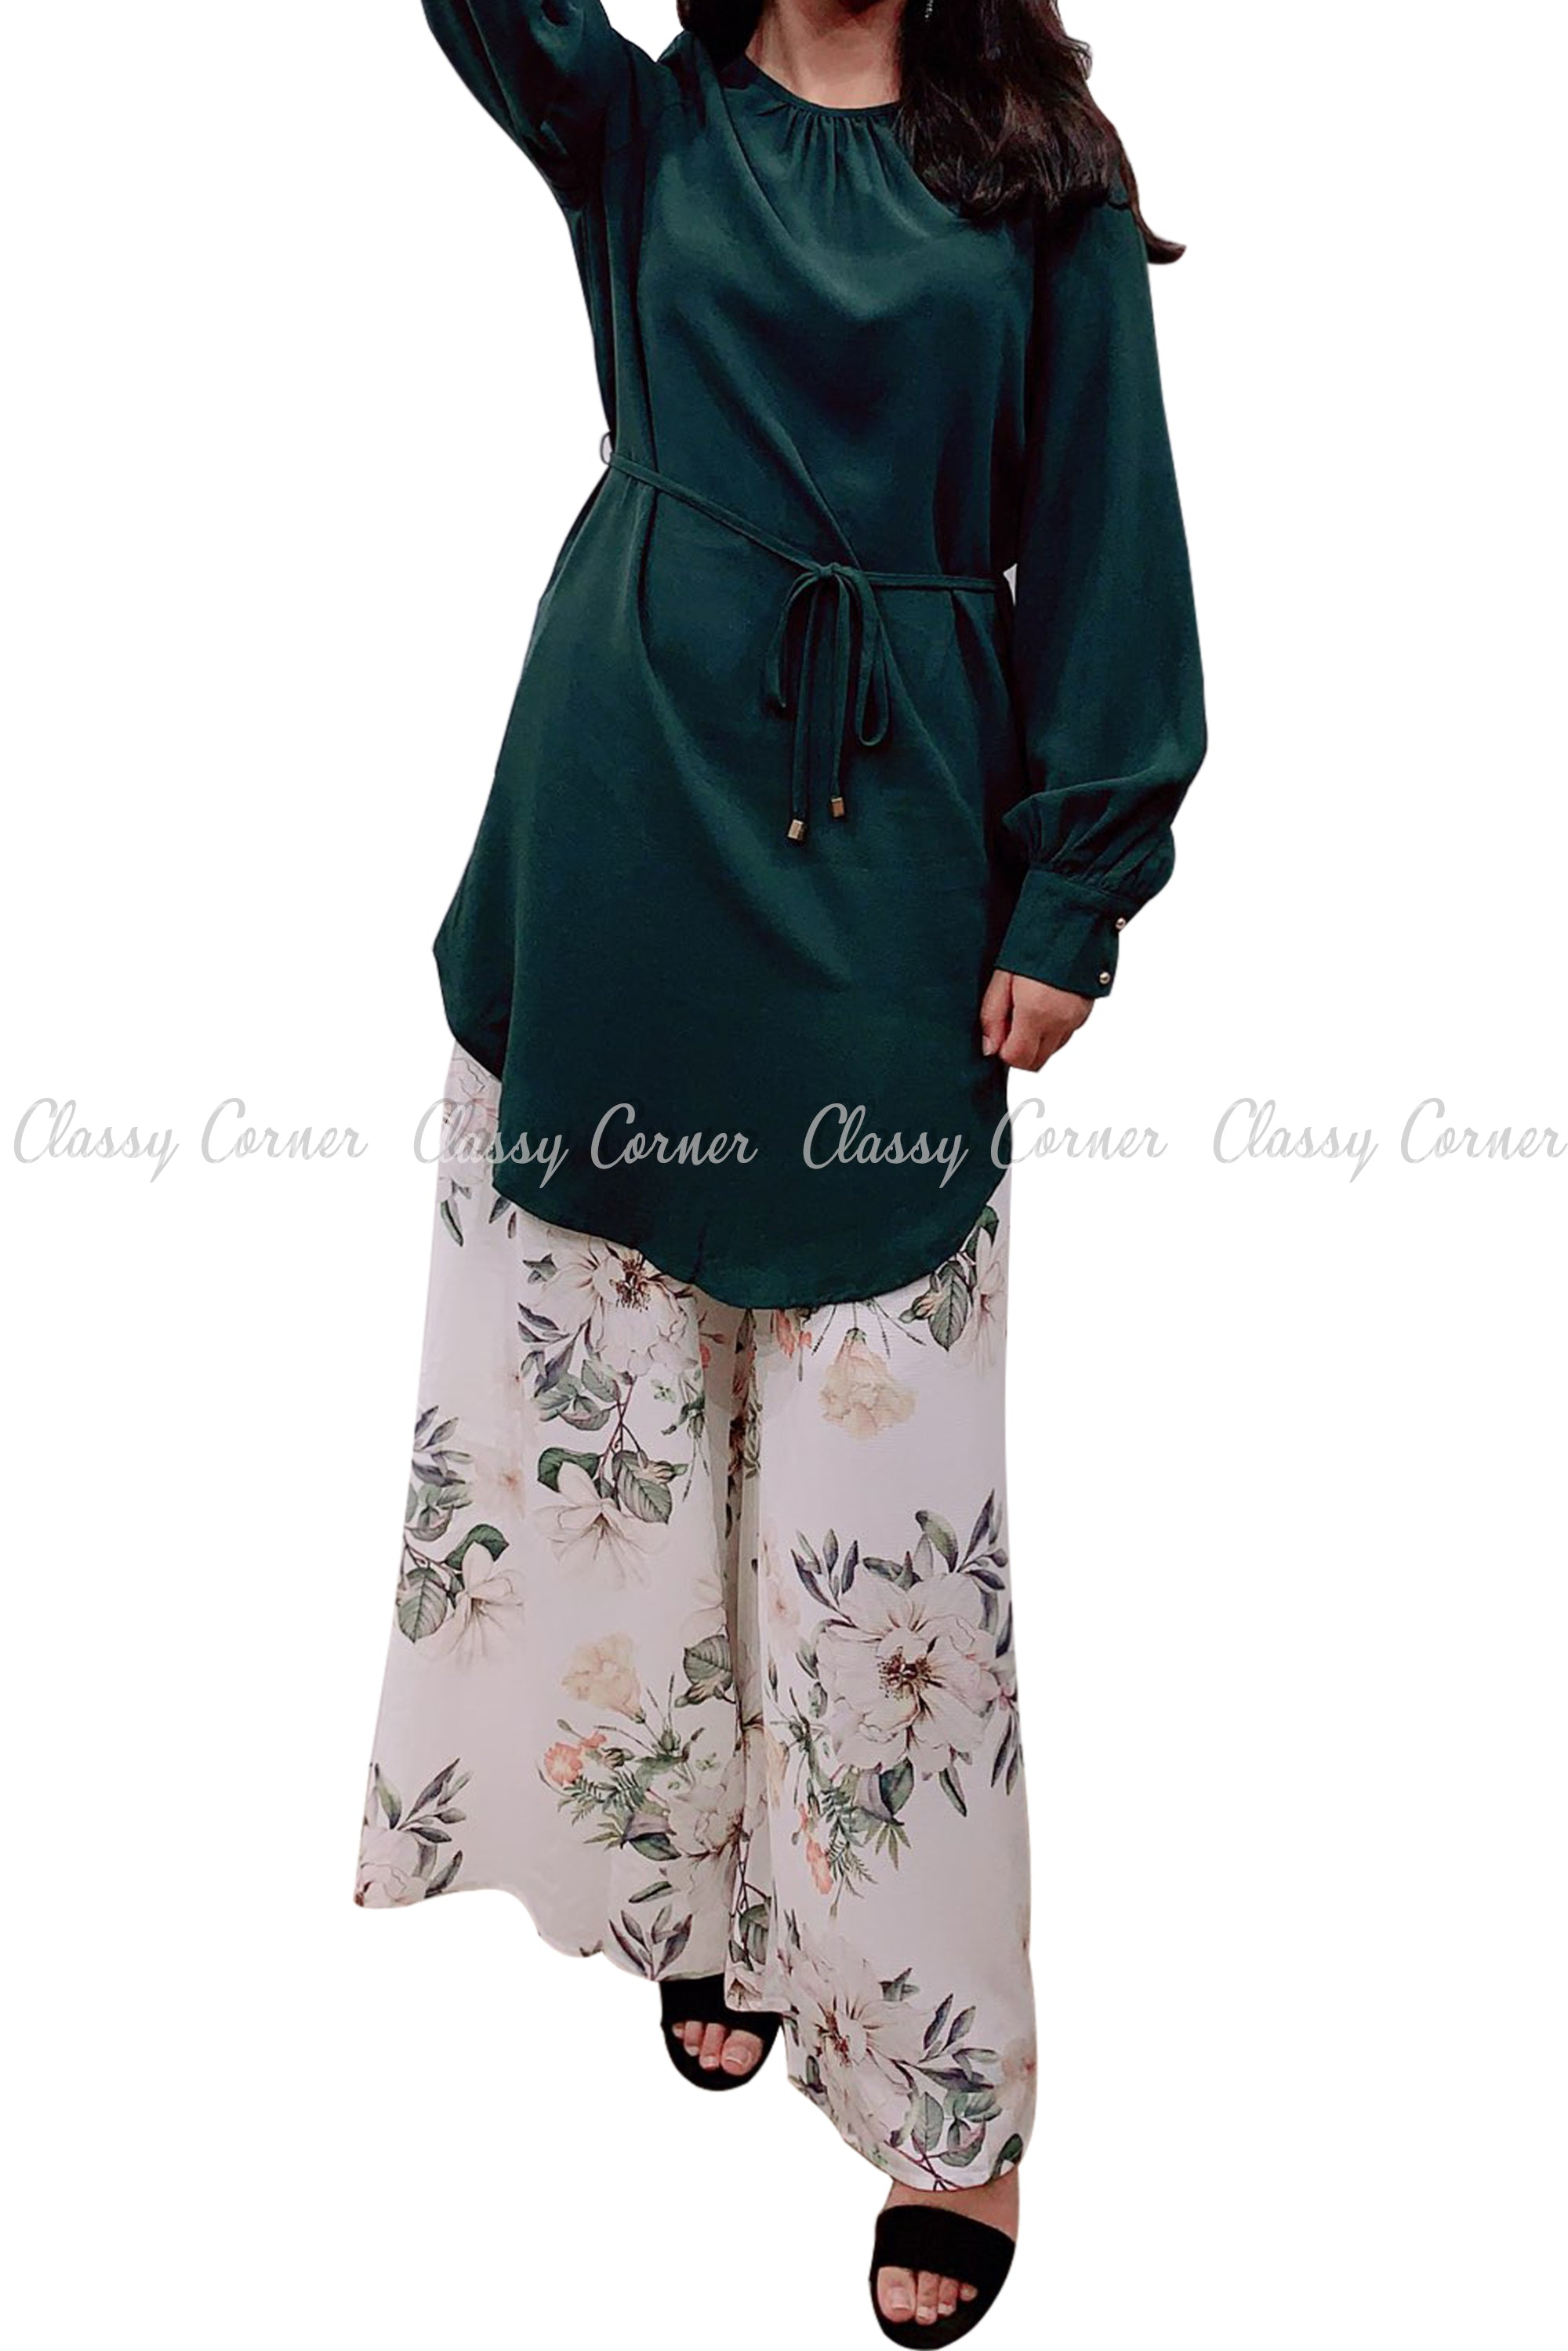 Tie Waist Green Modest Tunic Dress